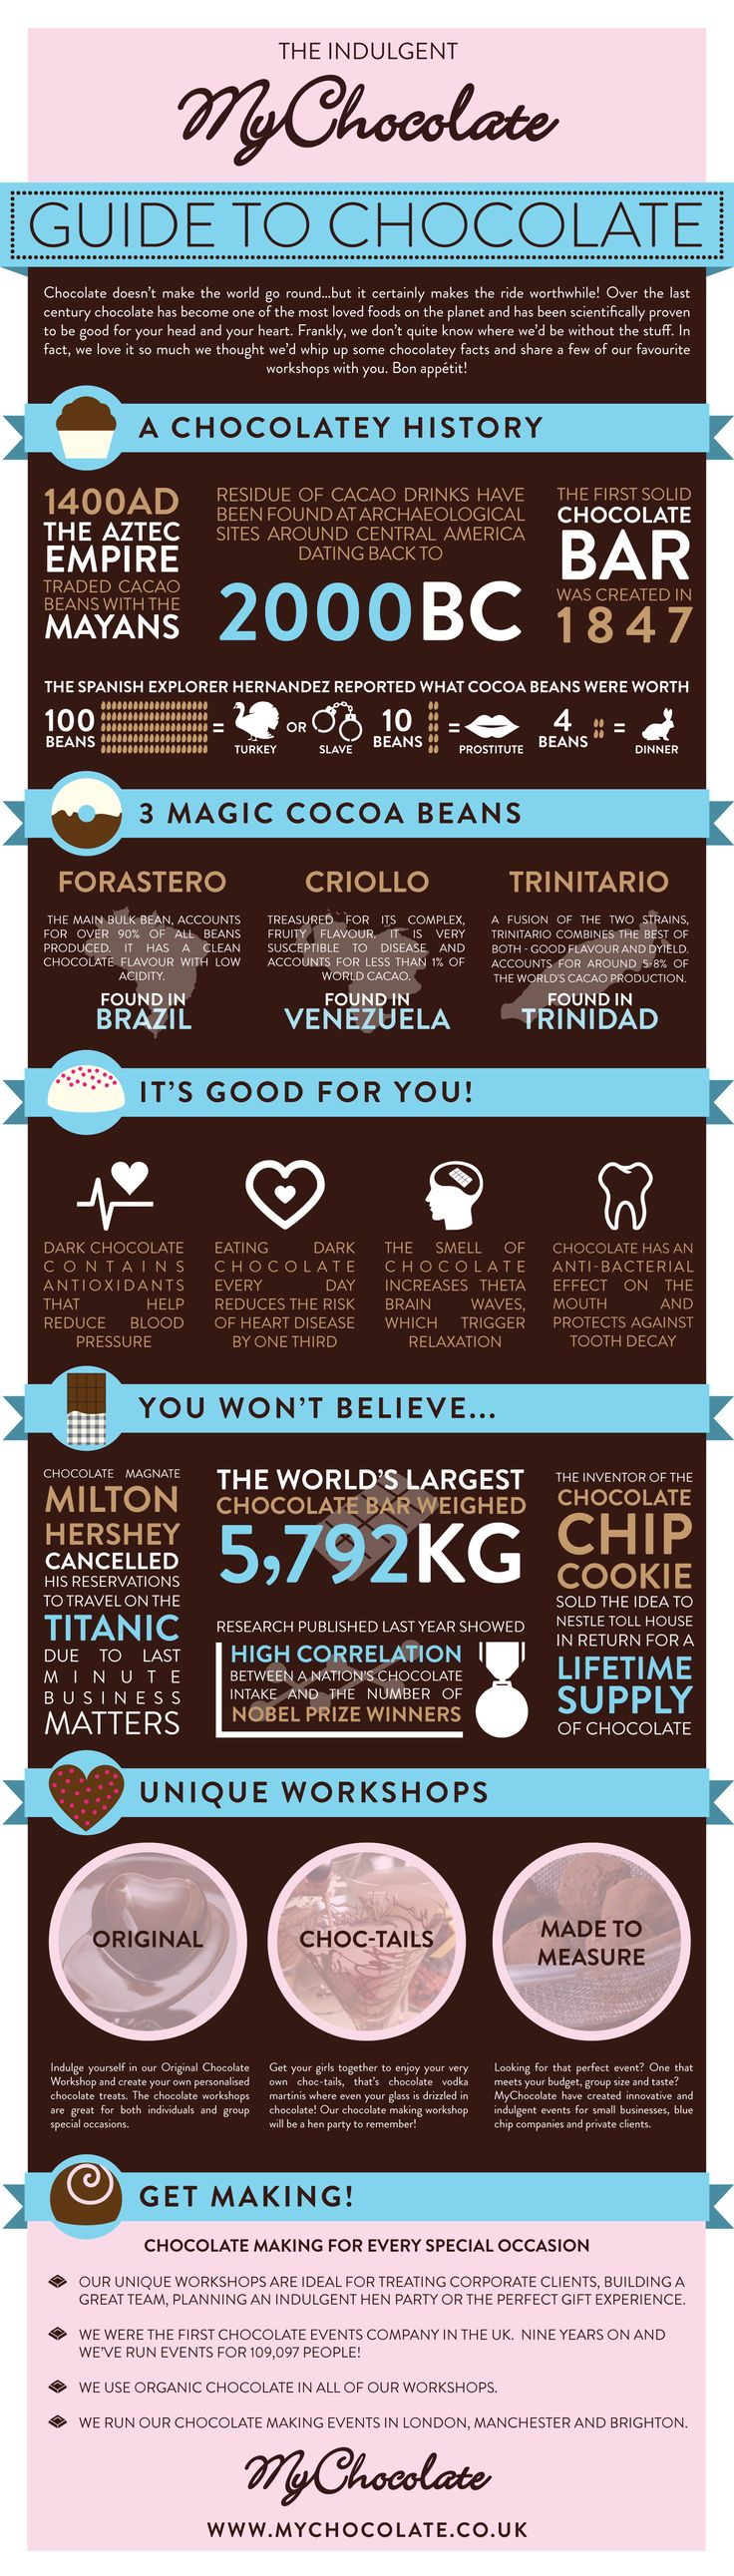 Worksheet History Of Chocolate Bars 1000 ideas about history of chocolate on pinterest chocolates bravo school making infographics